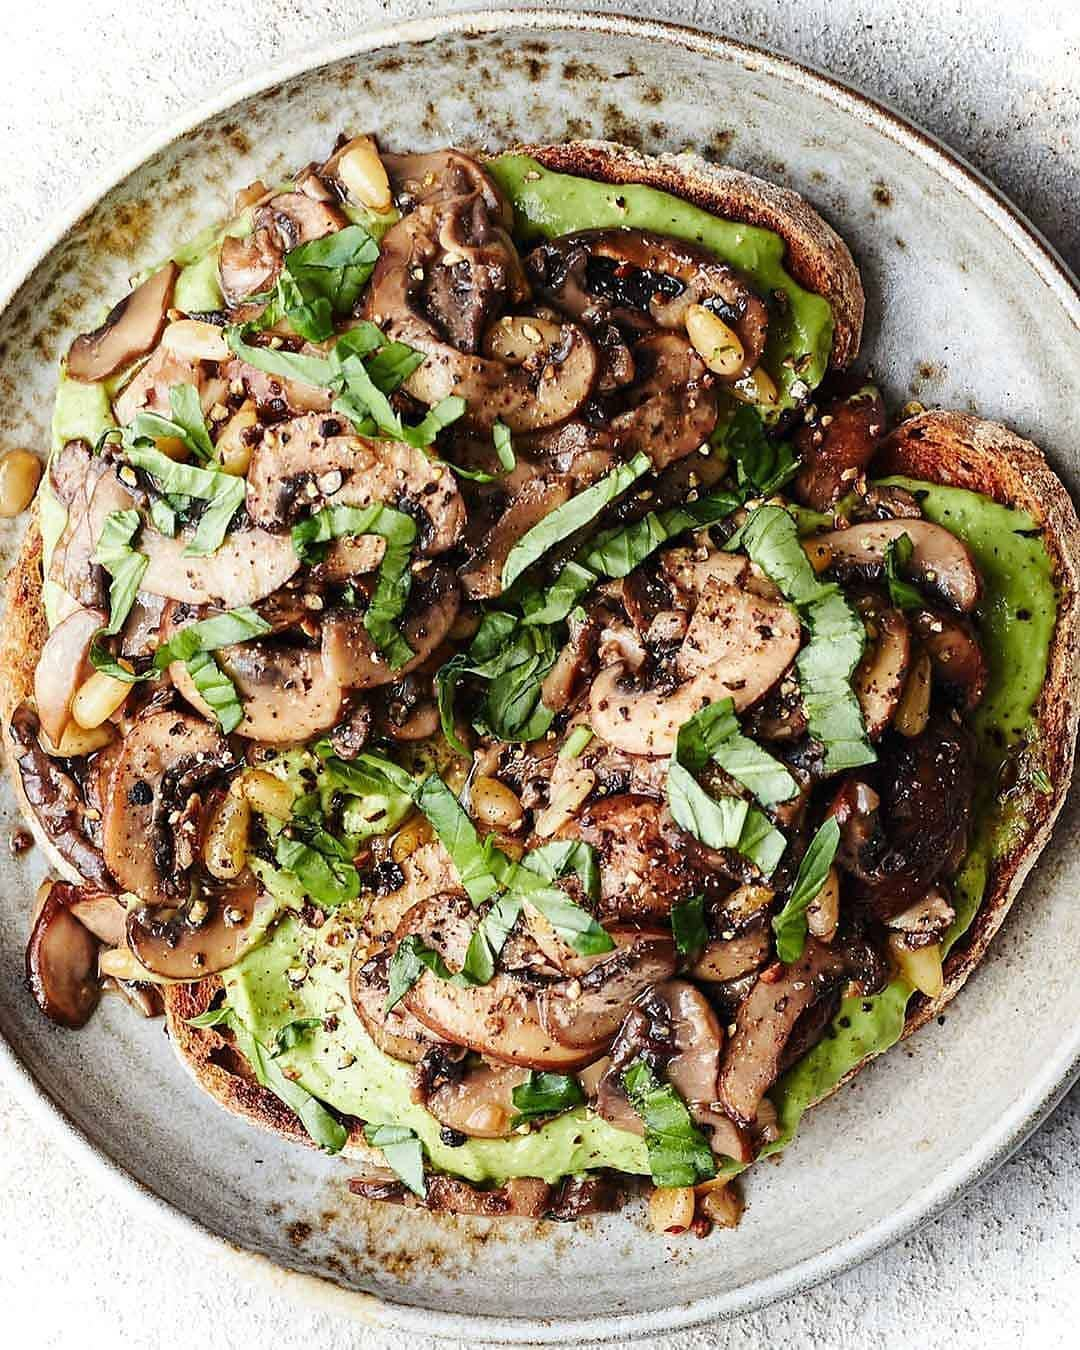 loaded avocado toasts topped with garlicky mushrooms fresh display image  d2b42ddd